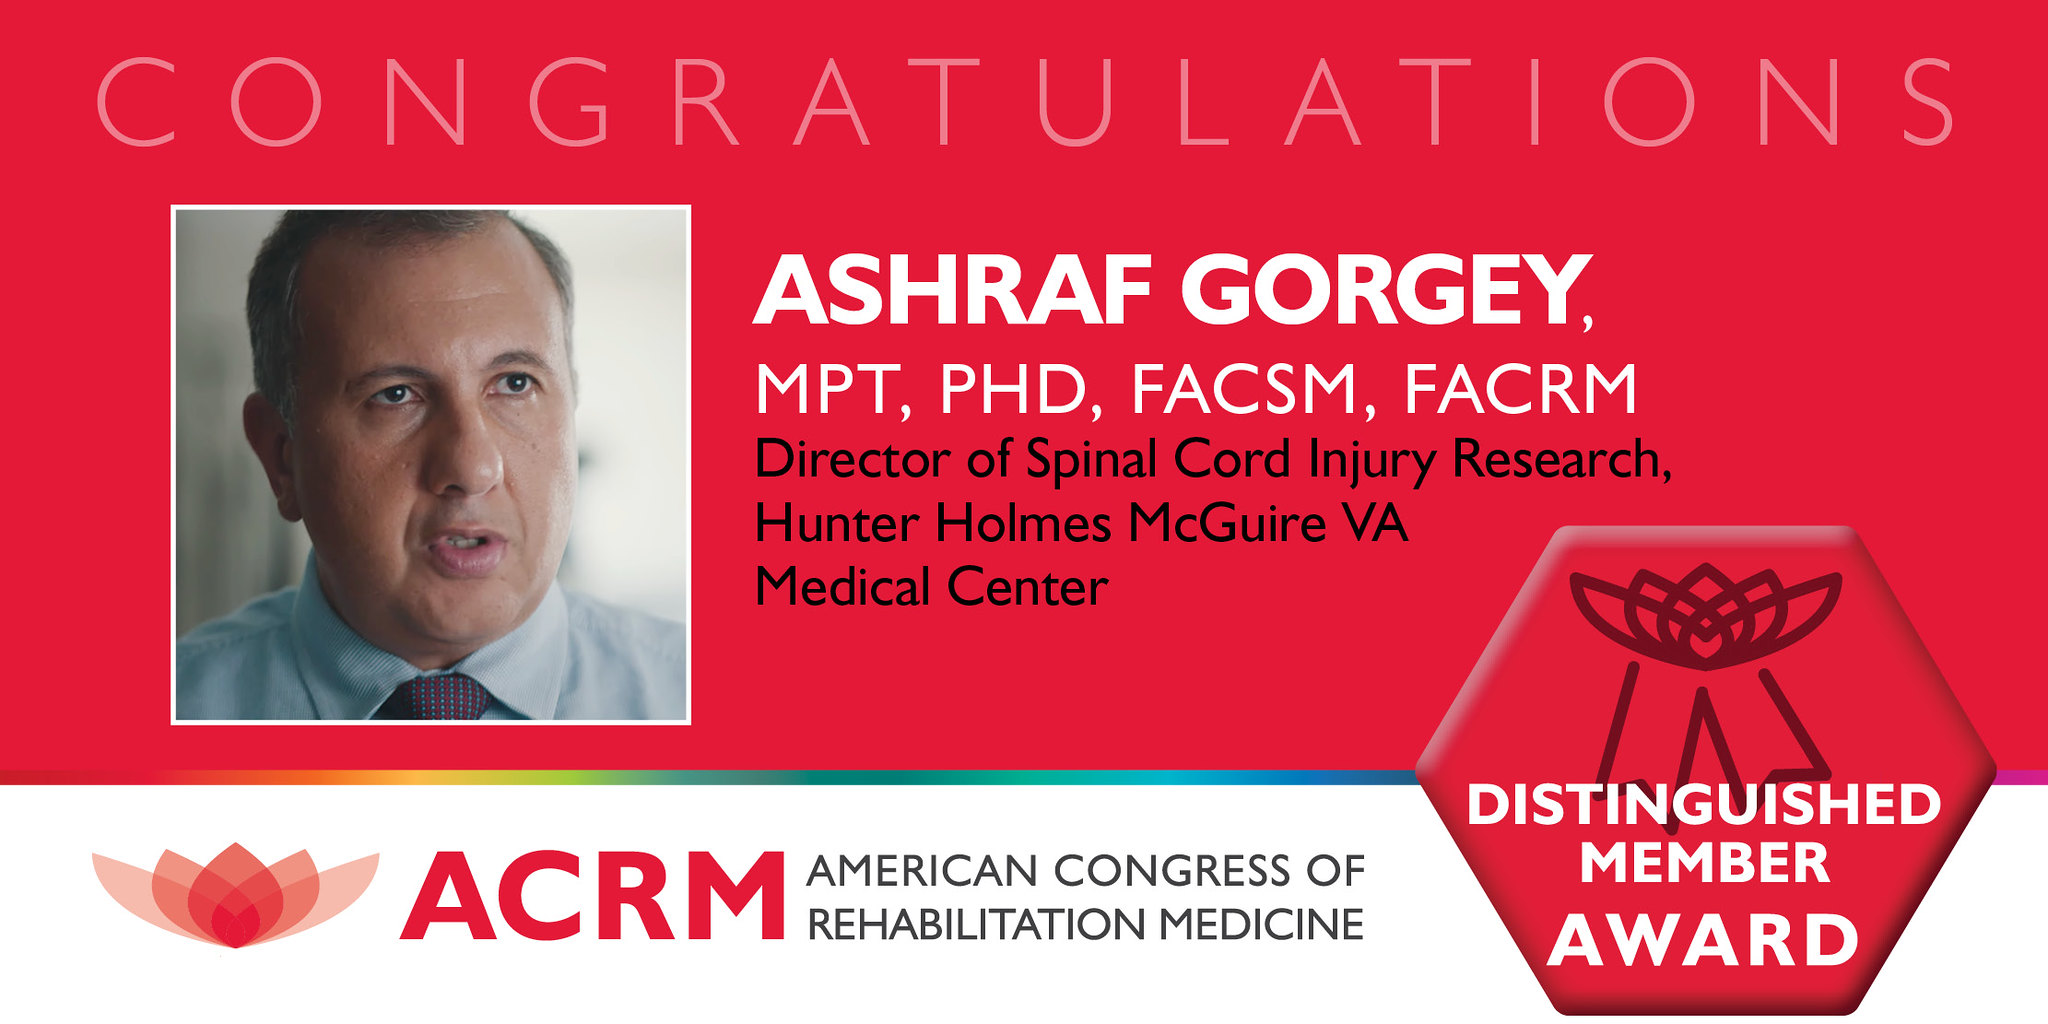 Ashraf Gorgey is 2020 recipient of the ACRM Distinguised Member Award